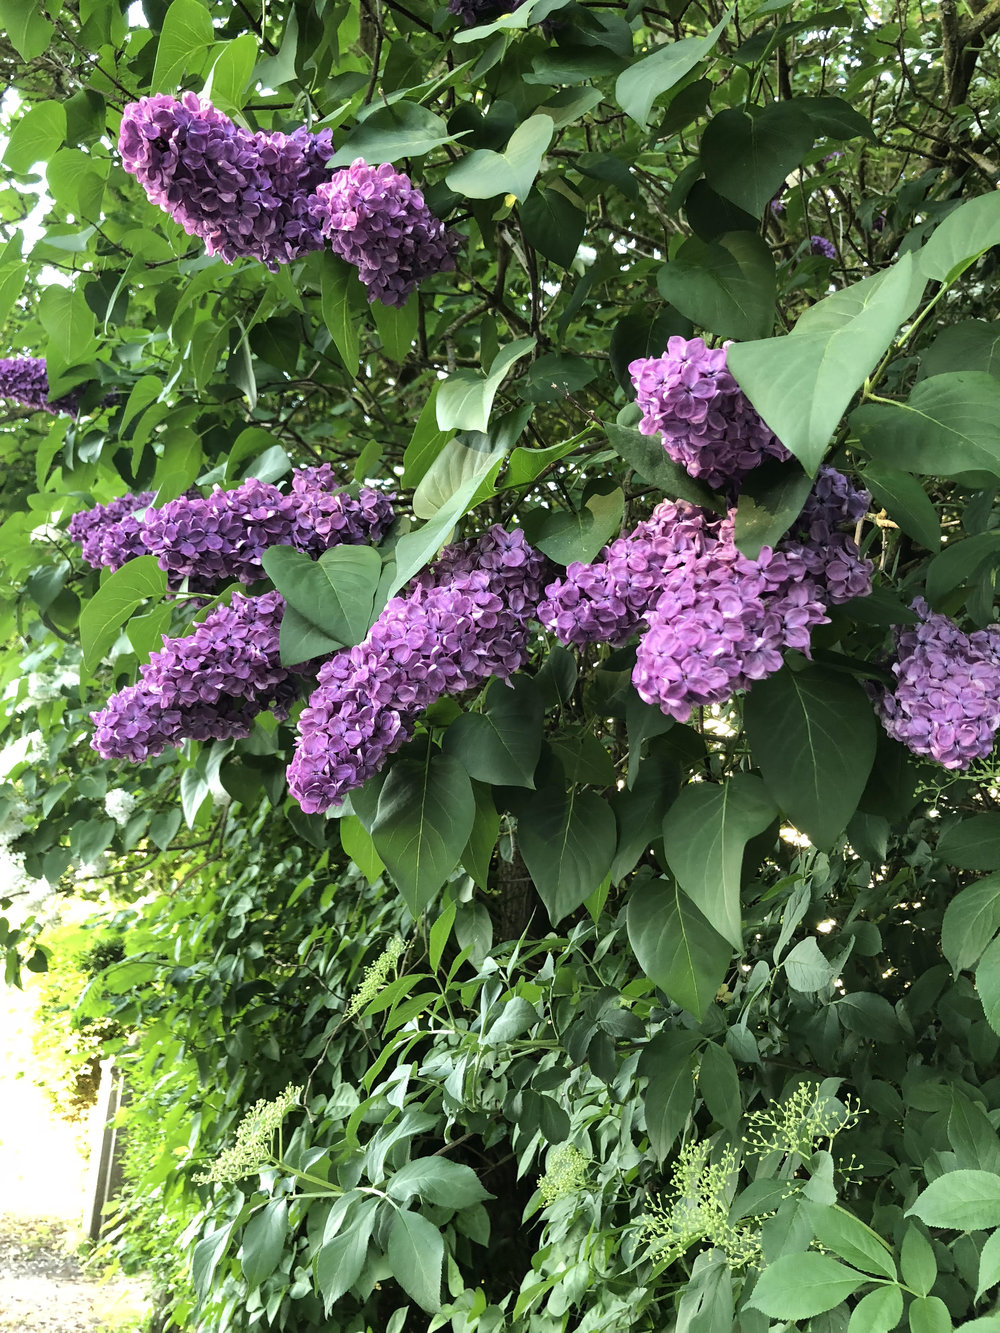 Aarhus gardens are full of lilacs at this time of year. May,2018